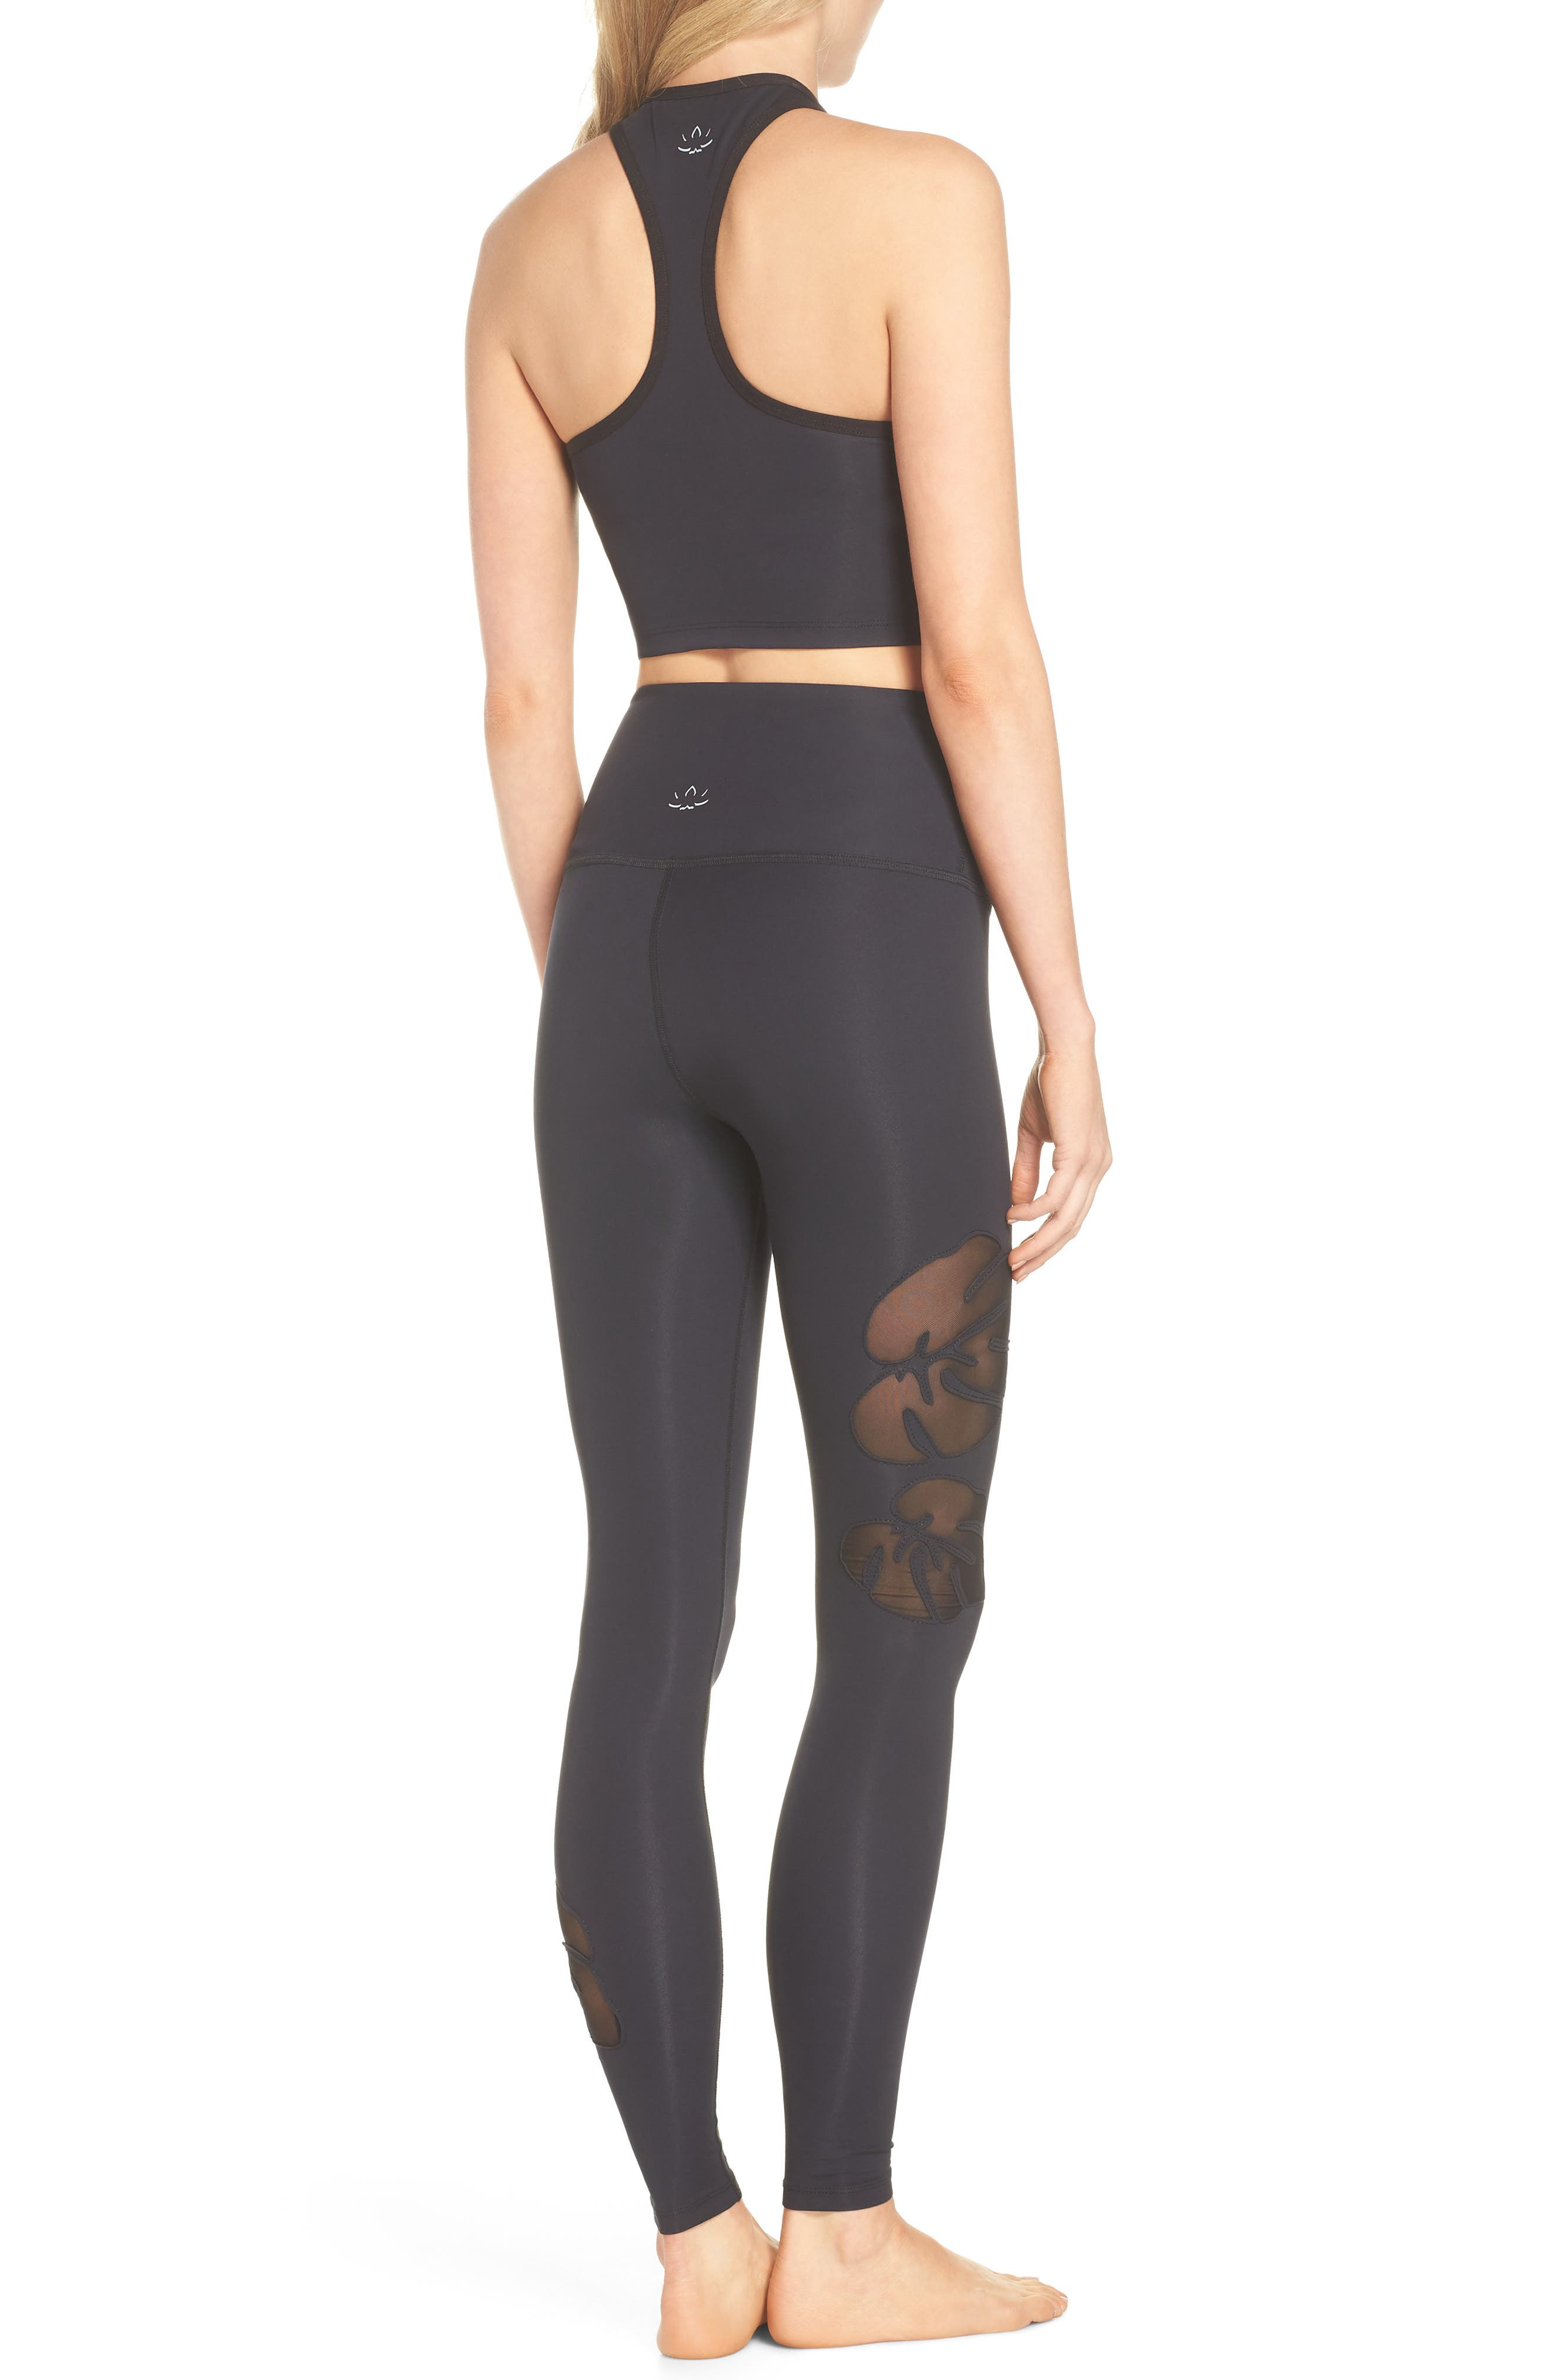 Take Leaf High Waist Leggings,                             Alternate thumbnail 10, color,                             002